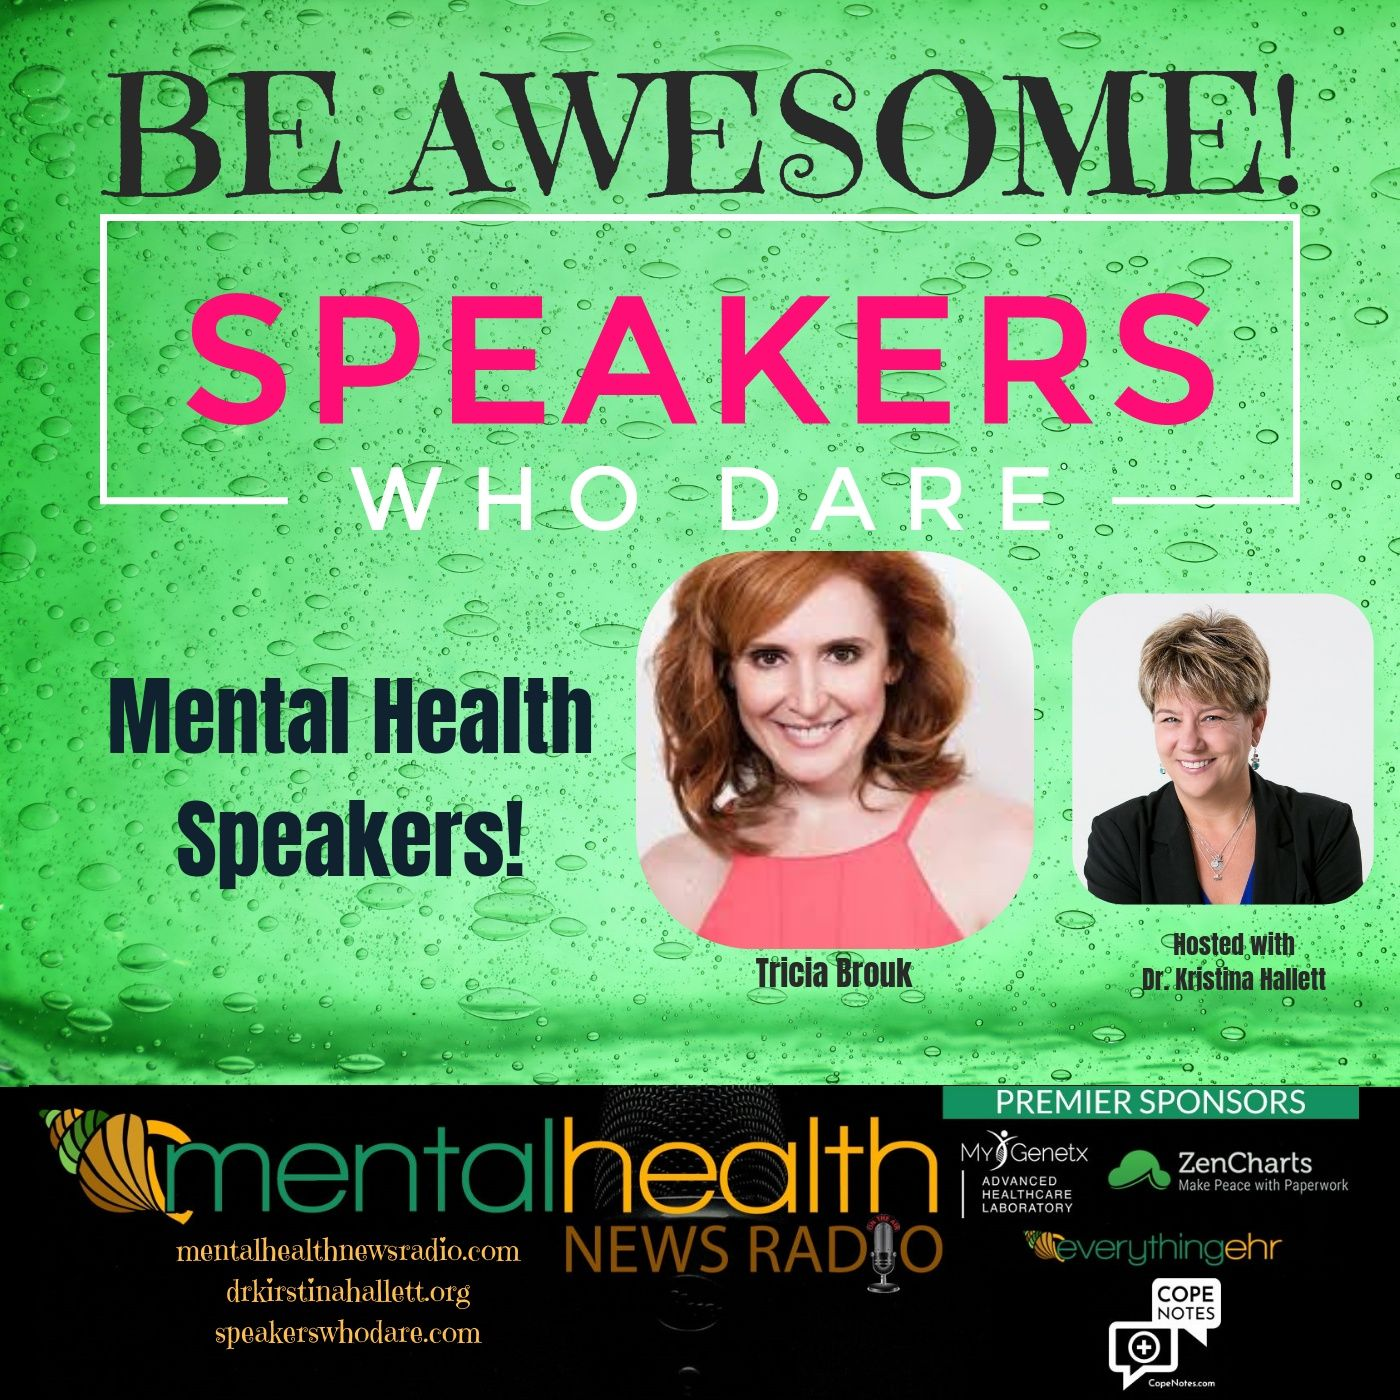 Mental Health News Radio - Be Awesome: Mental Health Speakers with Tricia Brouk